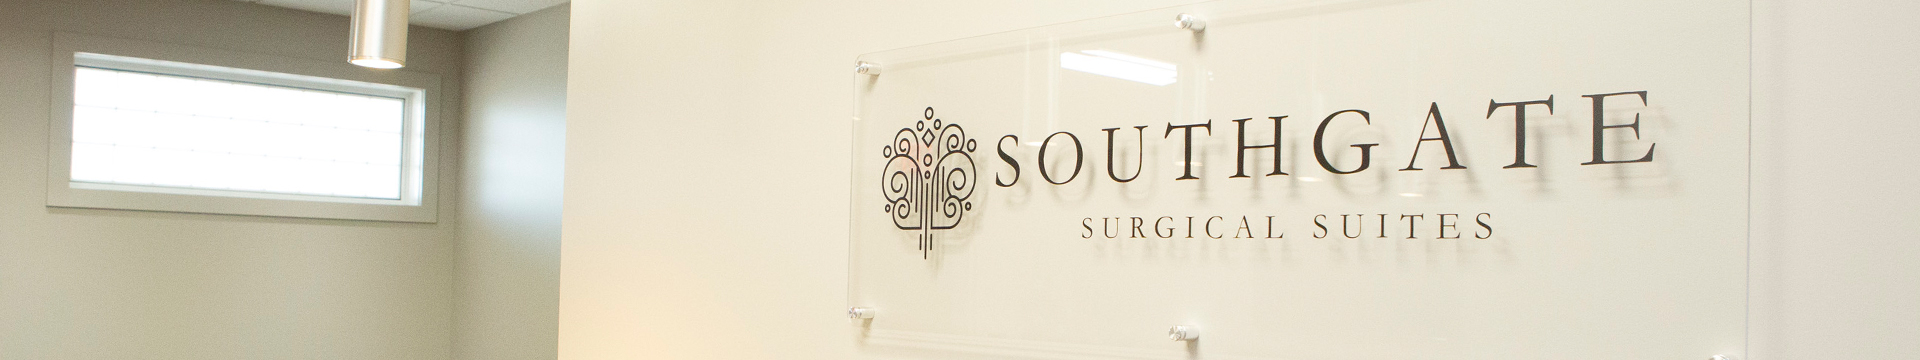 About Us | Southgate Surgical Suites